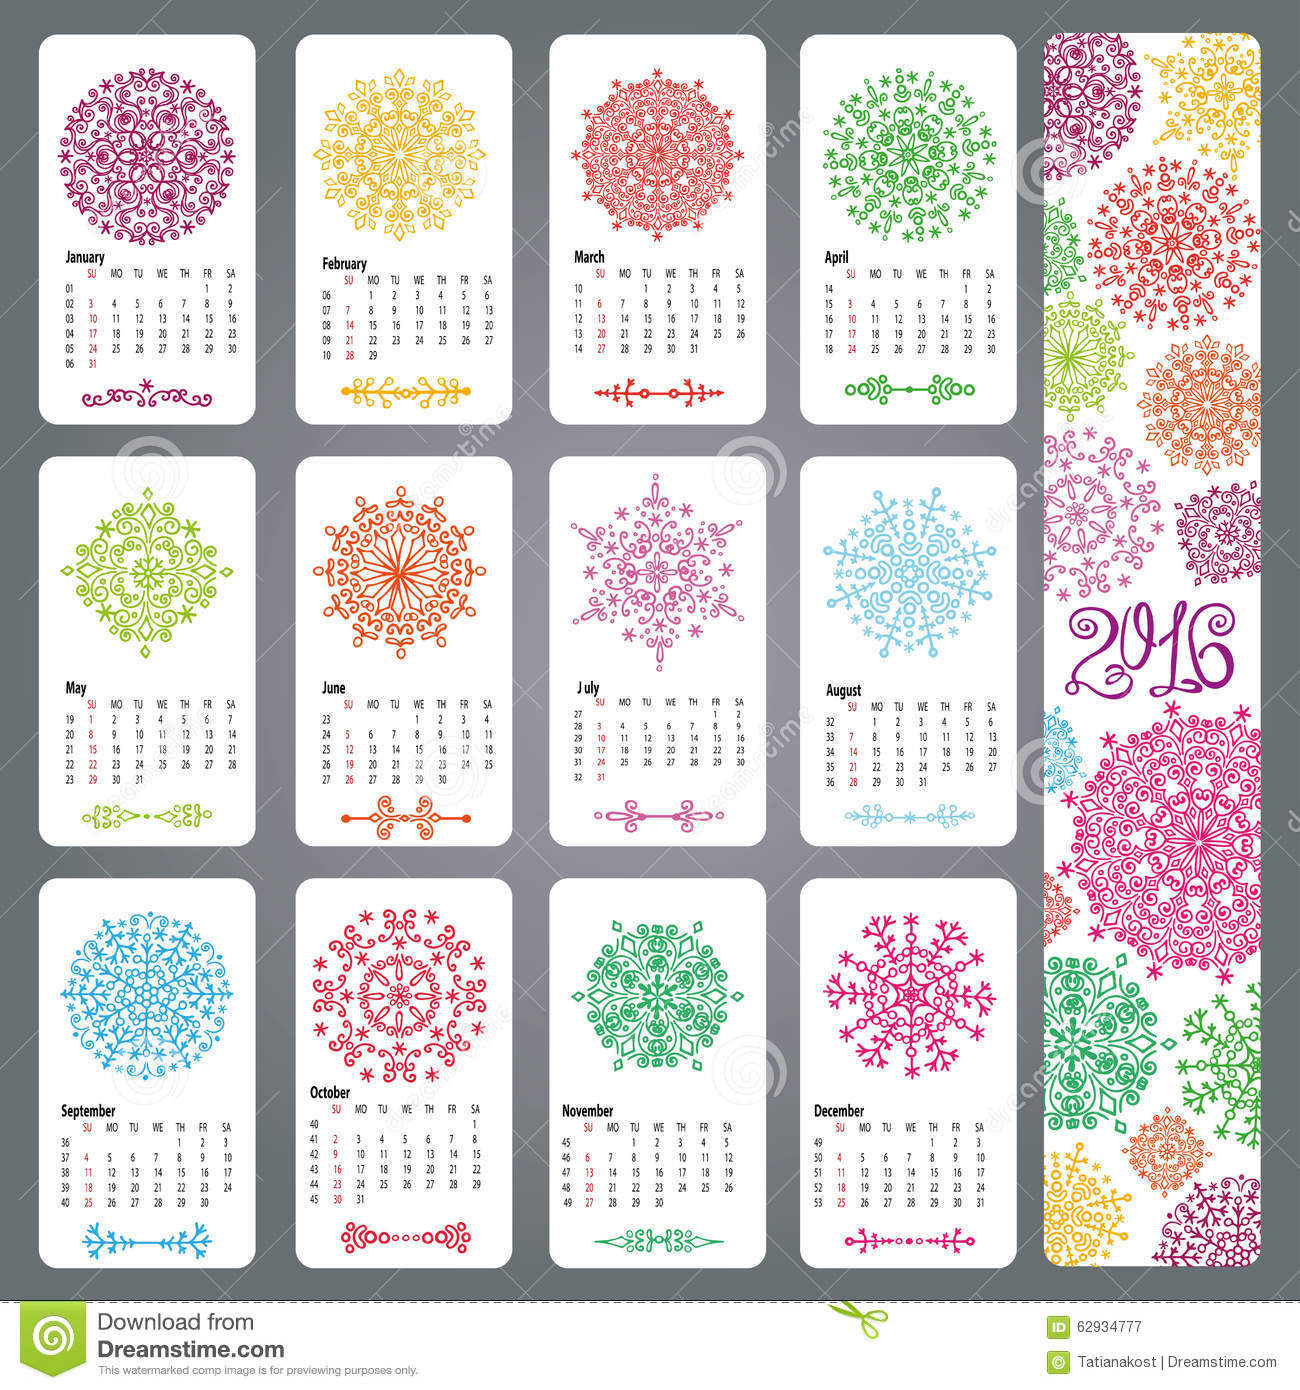 Calendar 2016 new year.Snowflakes decor,borders,dividers.Colored decor ...